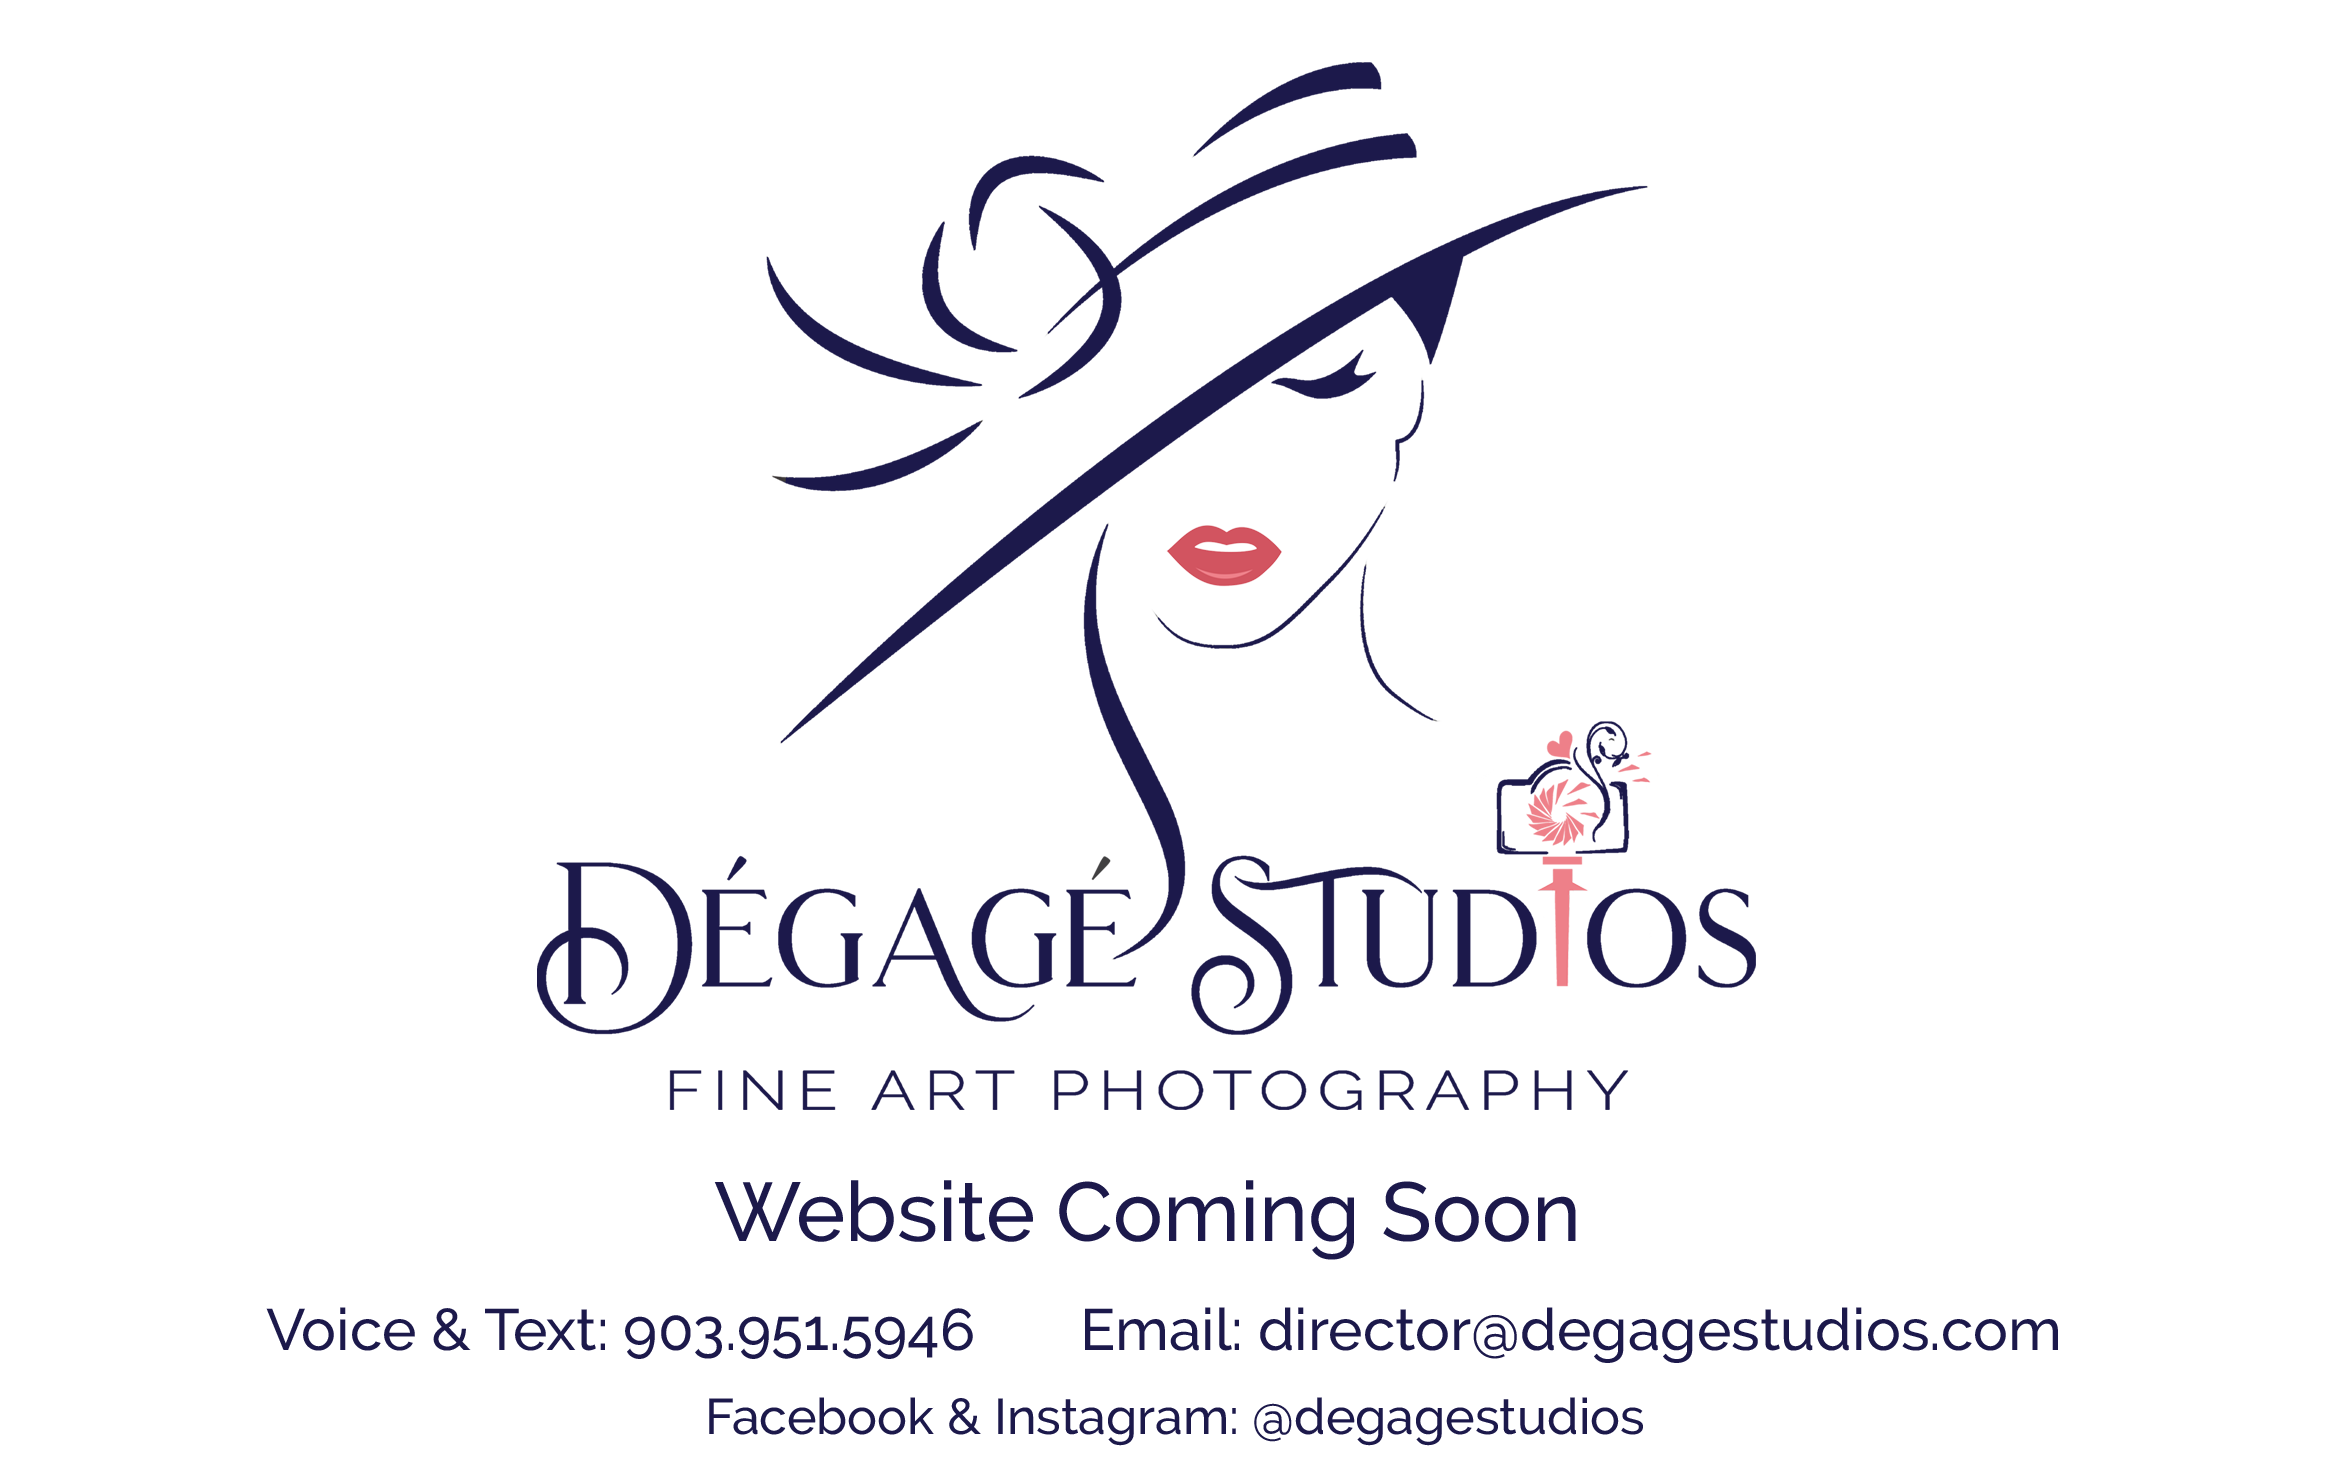 Degage Studios - Fine Art Photography